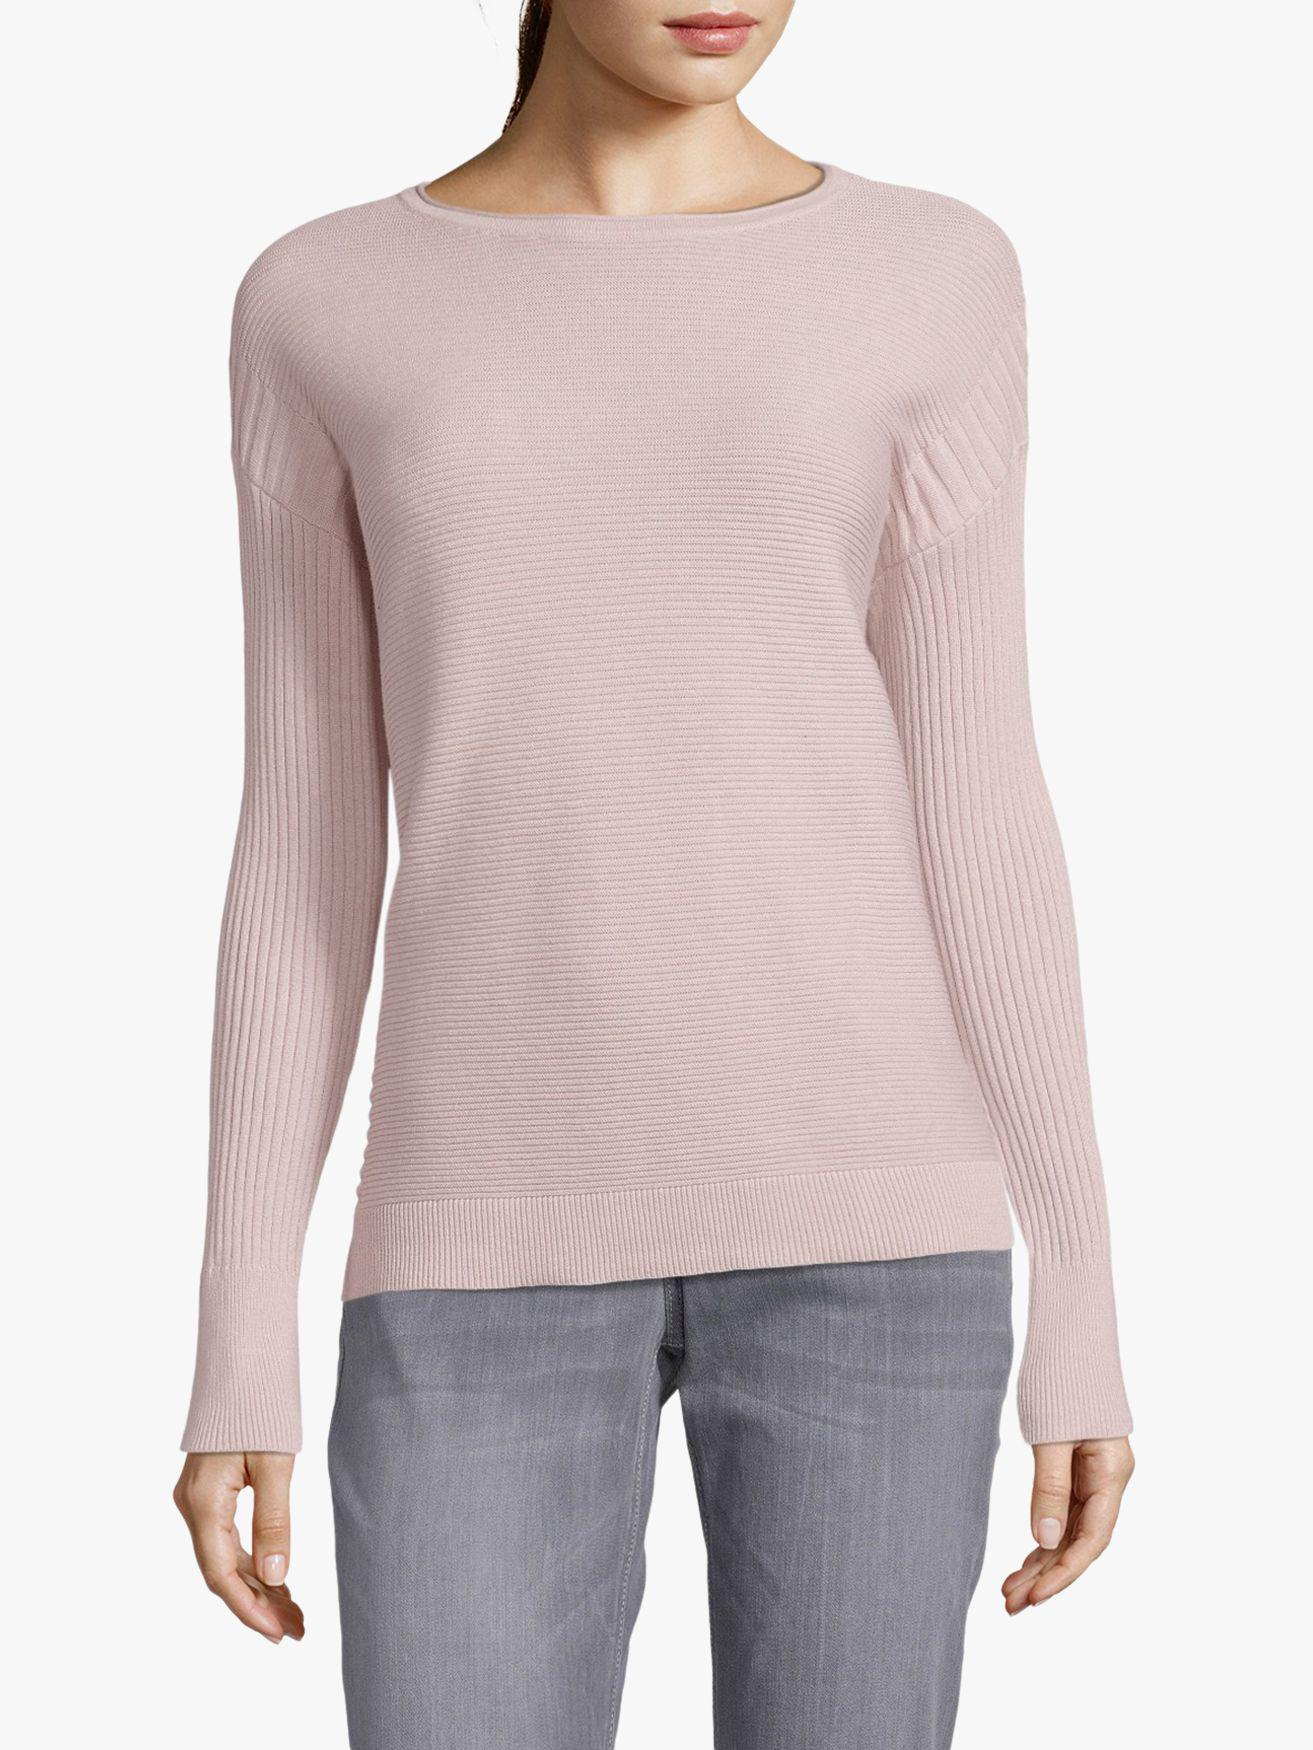 Betty Barclay Multi Texture Ribbed Knit Jumper in Pink - Lyst 5ad172d22